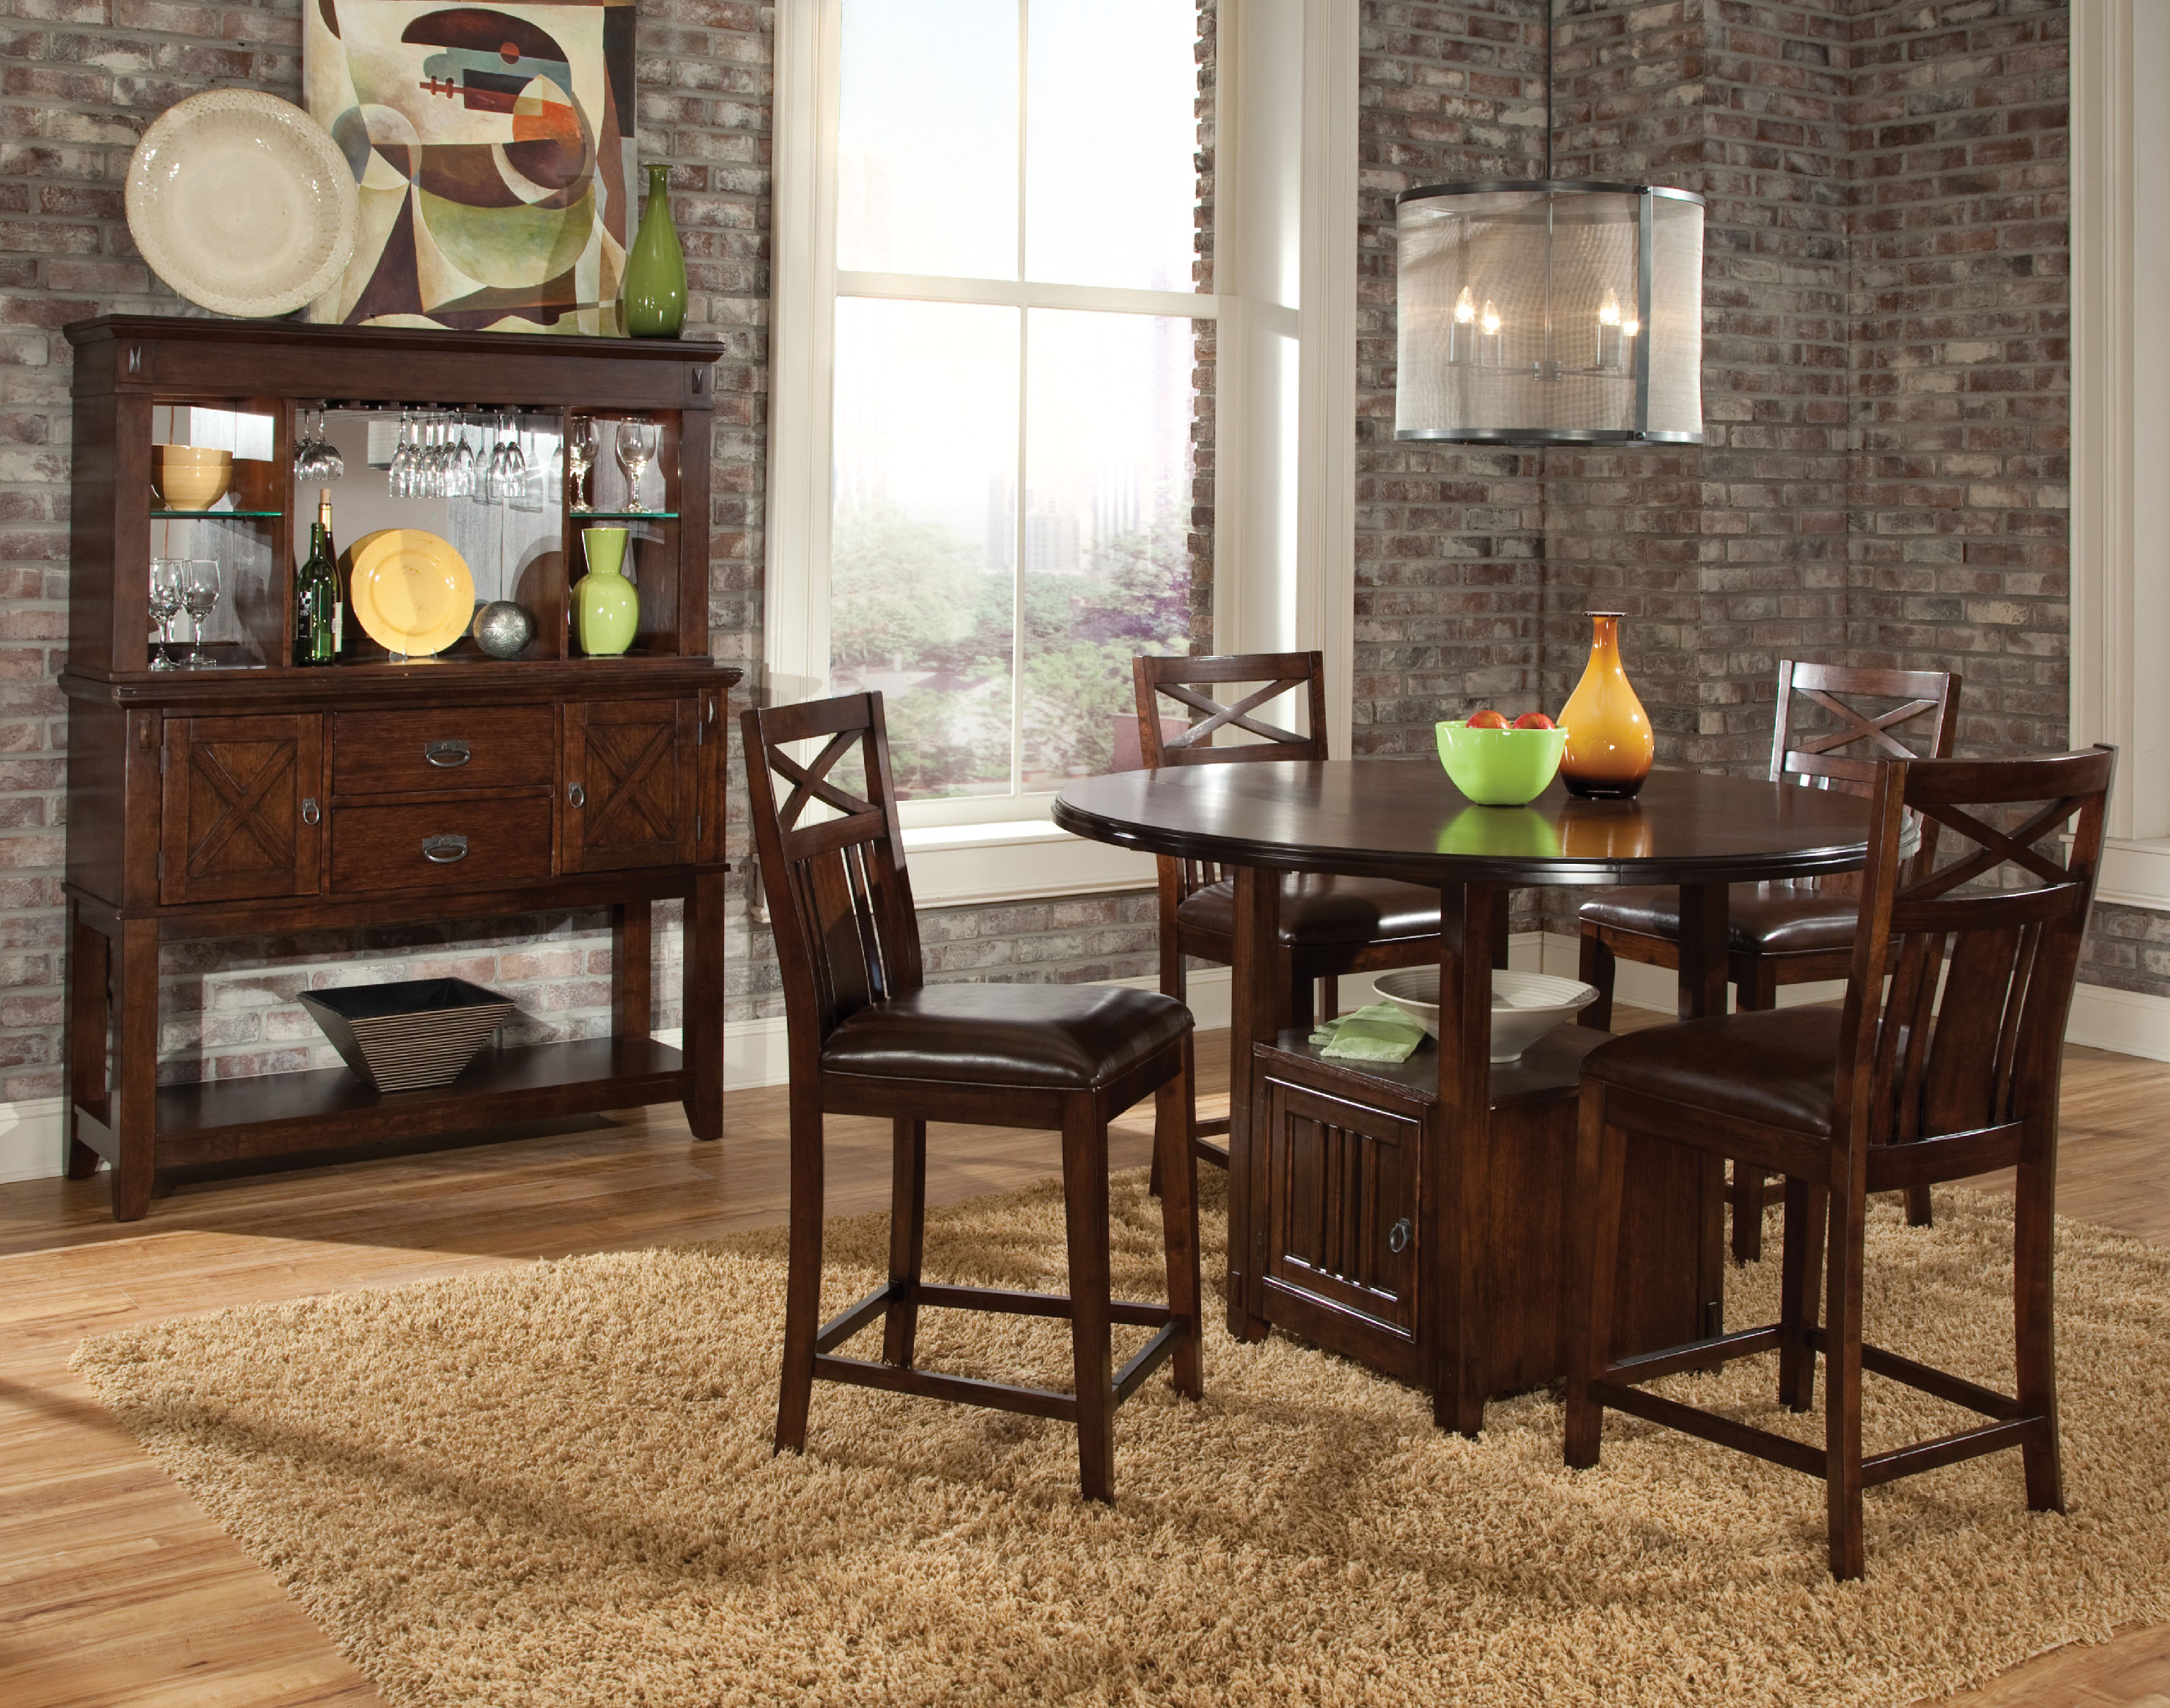 Wood Hutch Rug Table Chairs